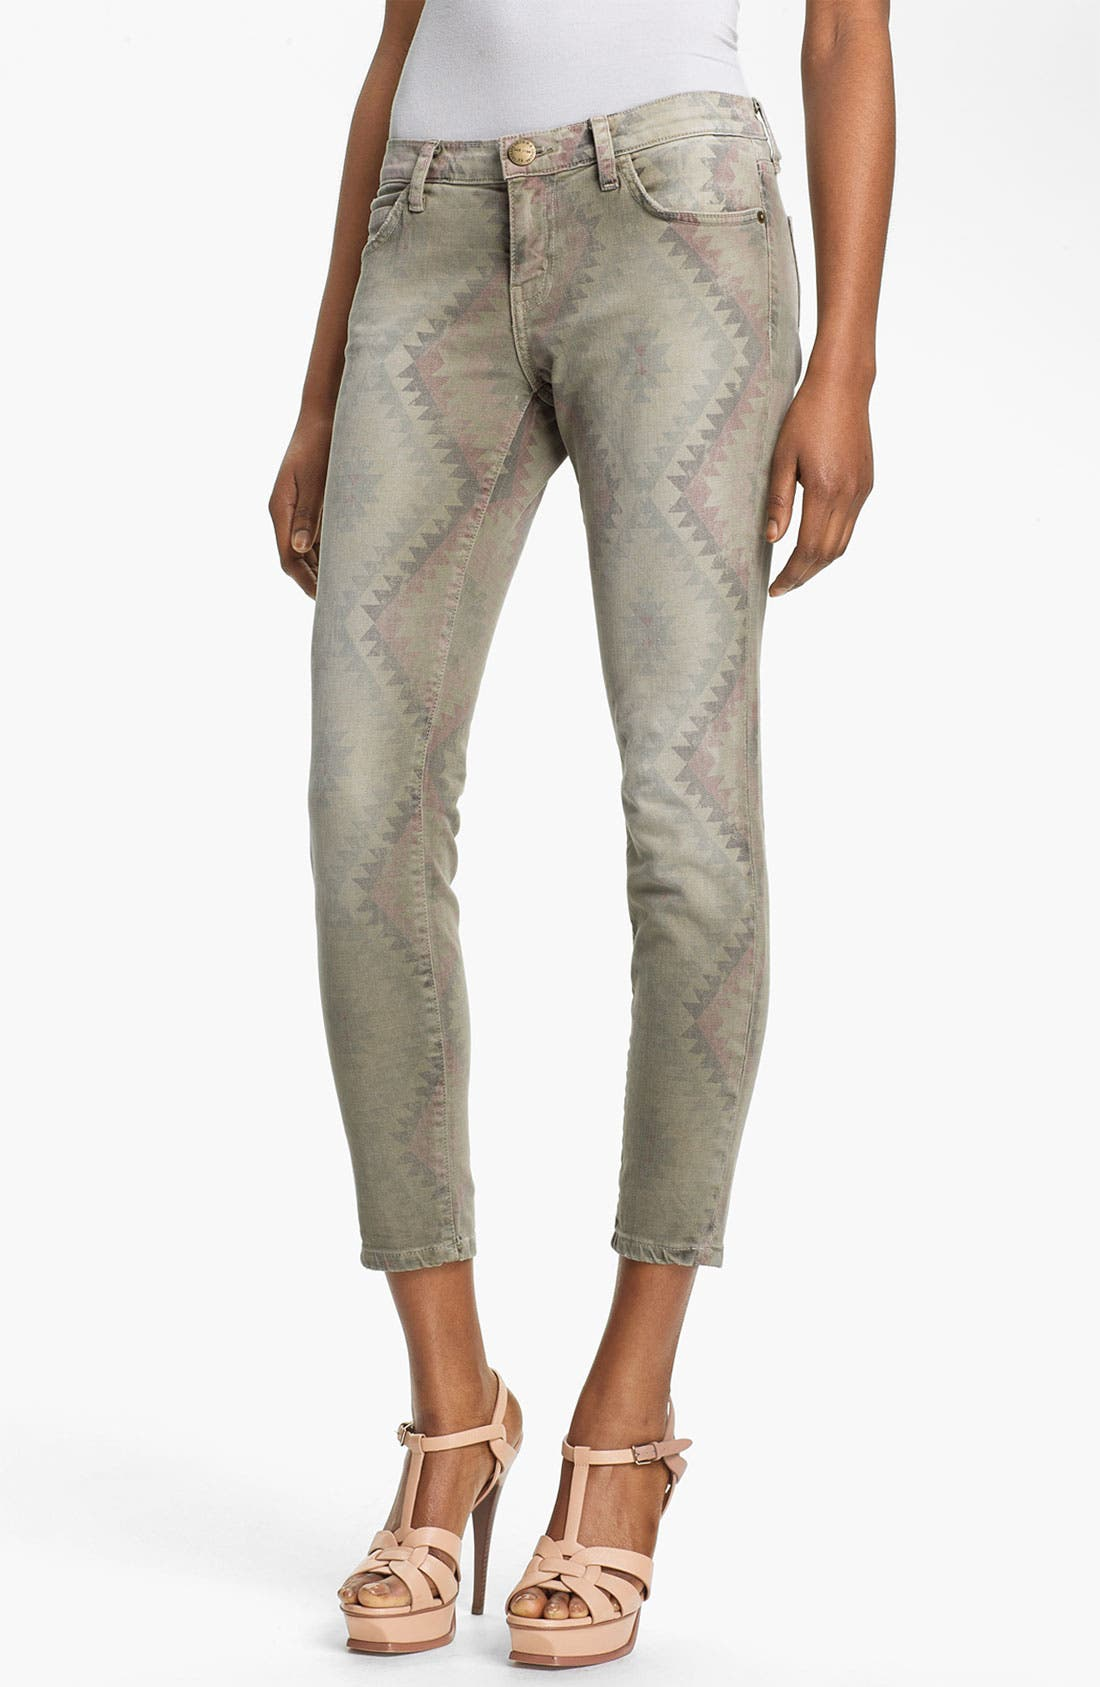 Alternate Image 1 Selected - Current/Elliott 'The Stiletto' Print Stretch Jeans